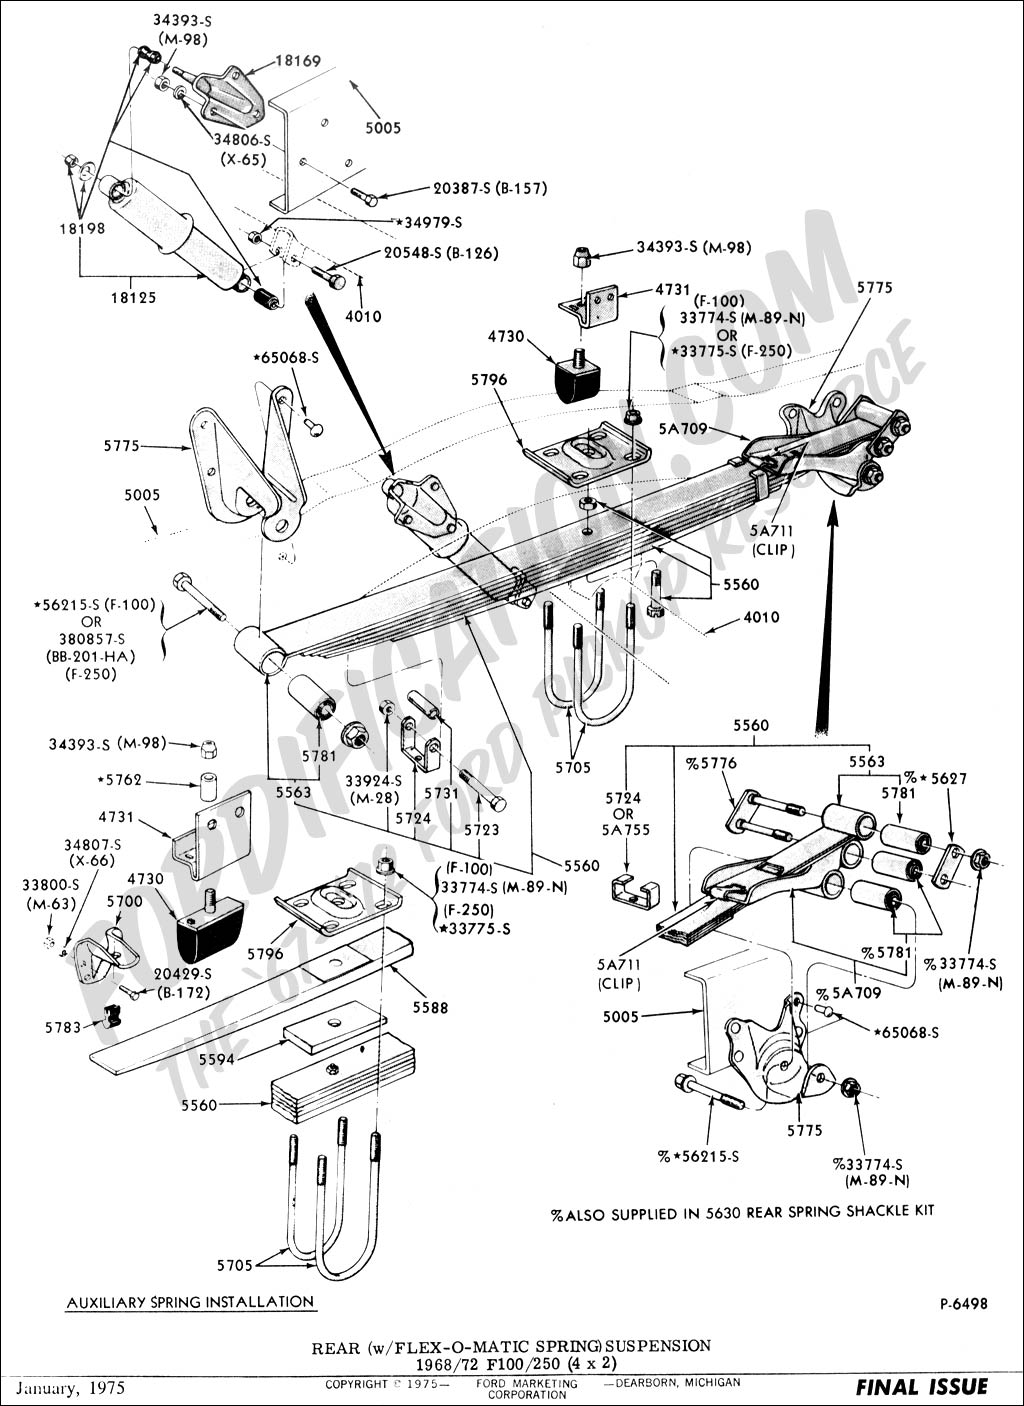 2010 F250 Front End Parts Diagram on ford expedition air suspension diagram